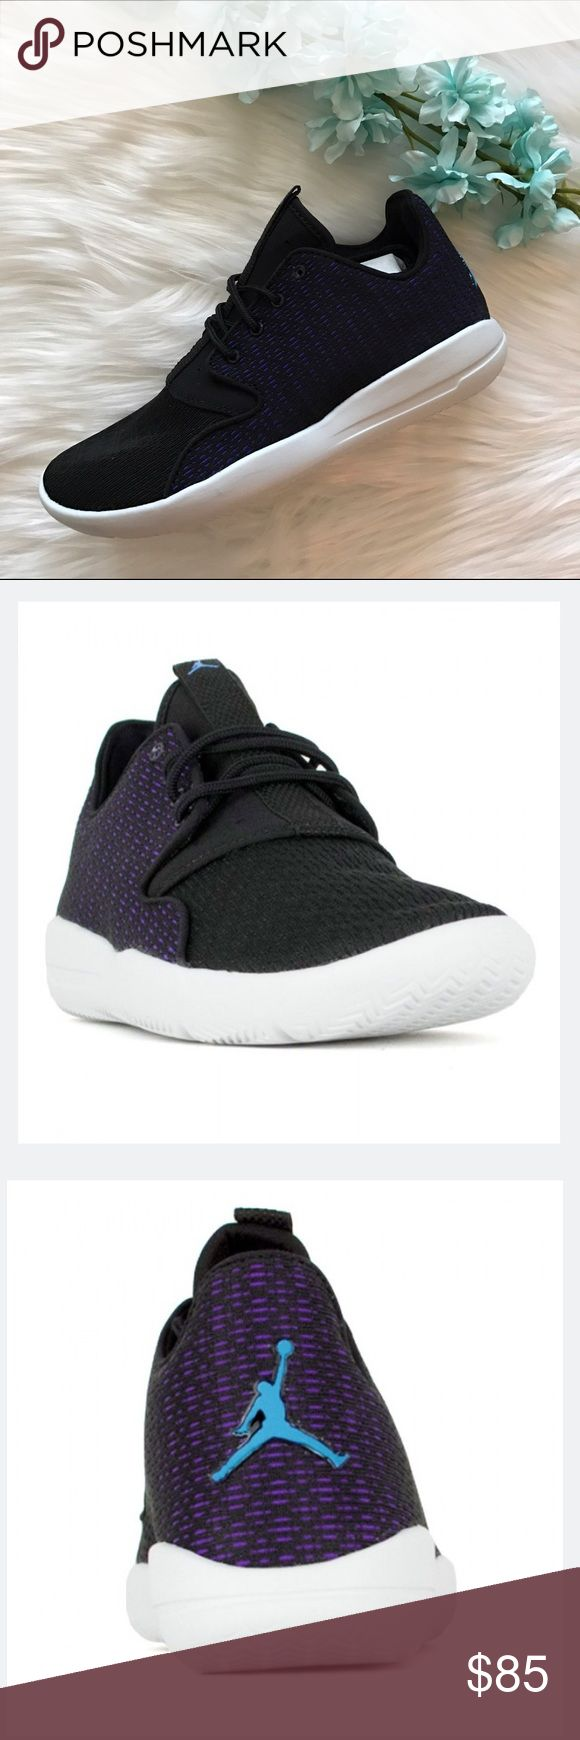 d5a04aa1ce0f ... hot jordan eclipse black and purple brand new brand new jordan eclipse  it is listed as